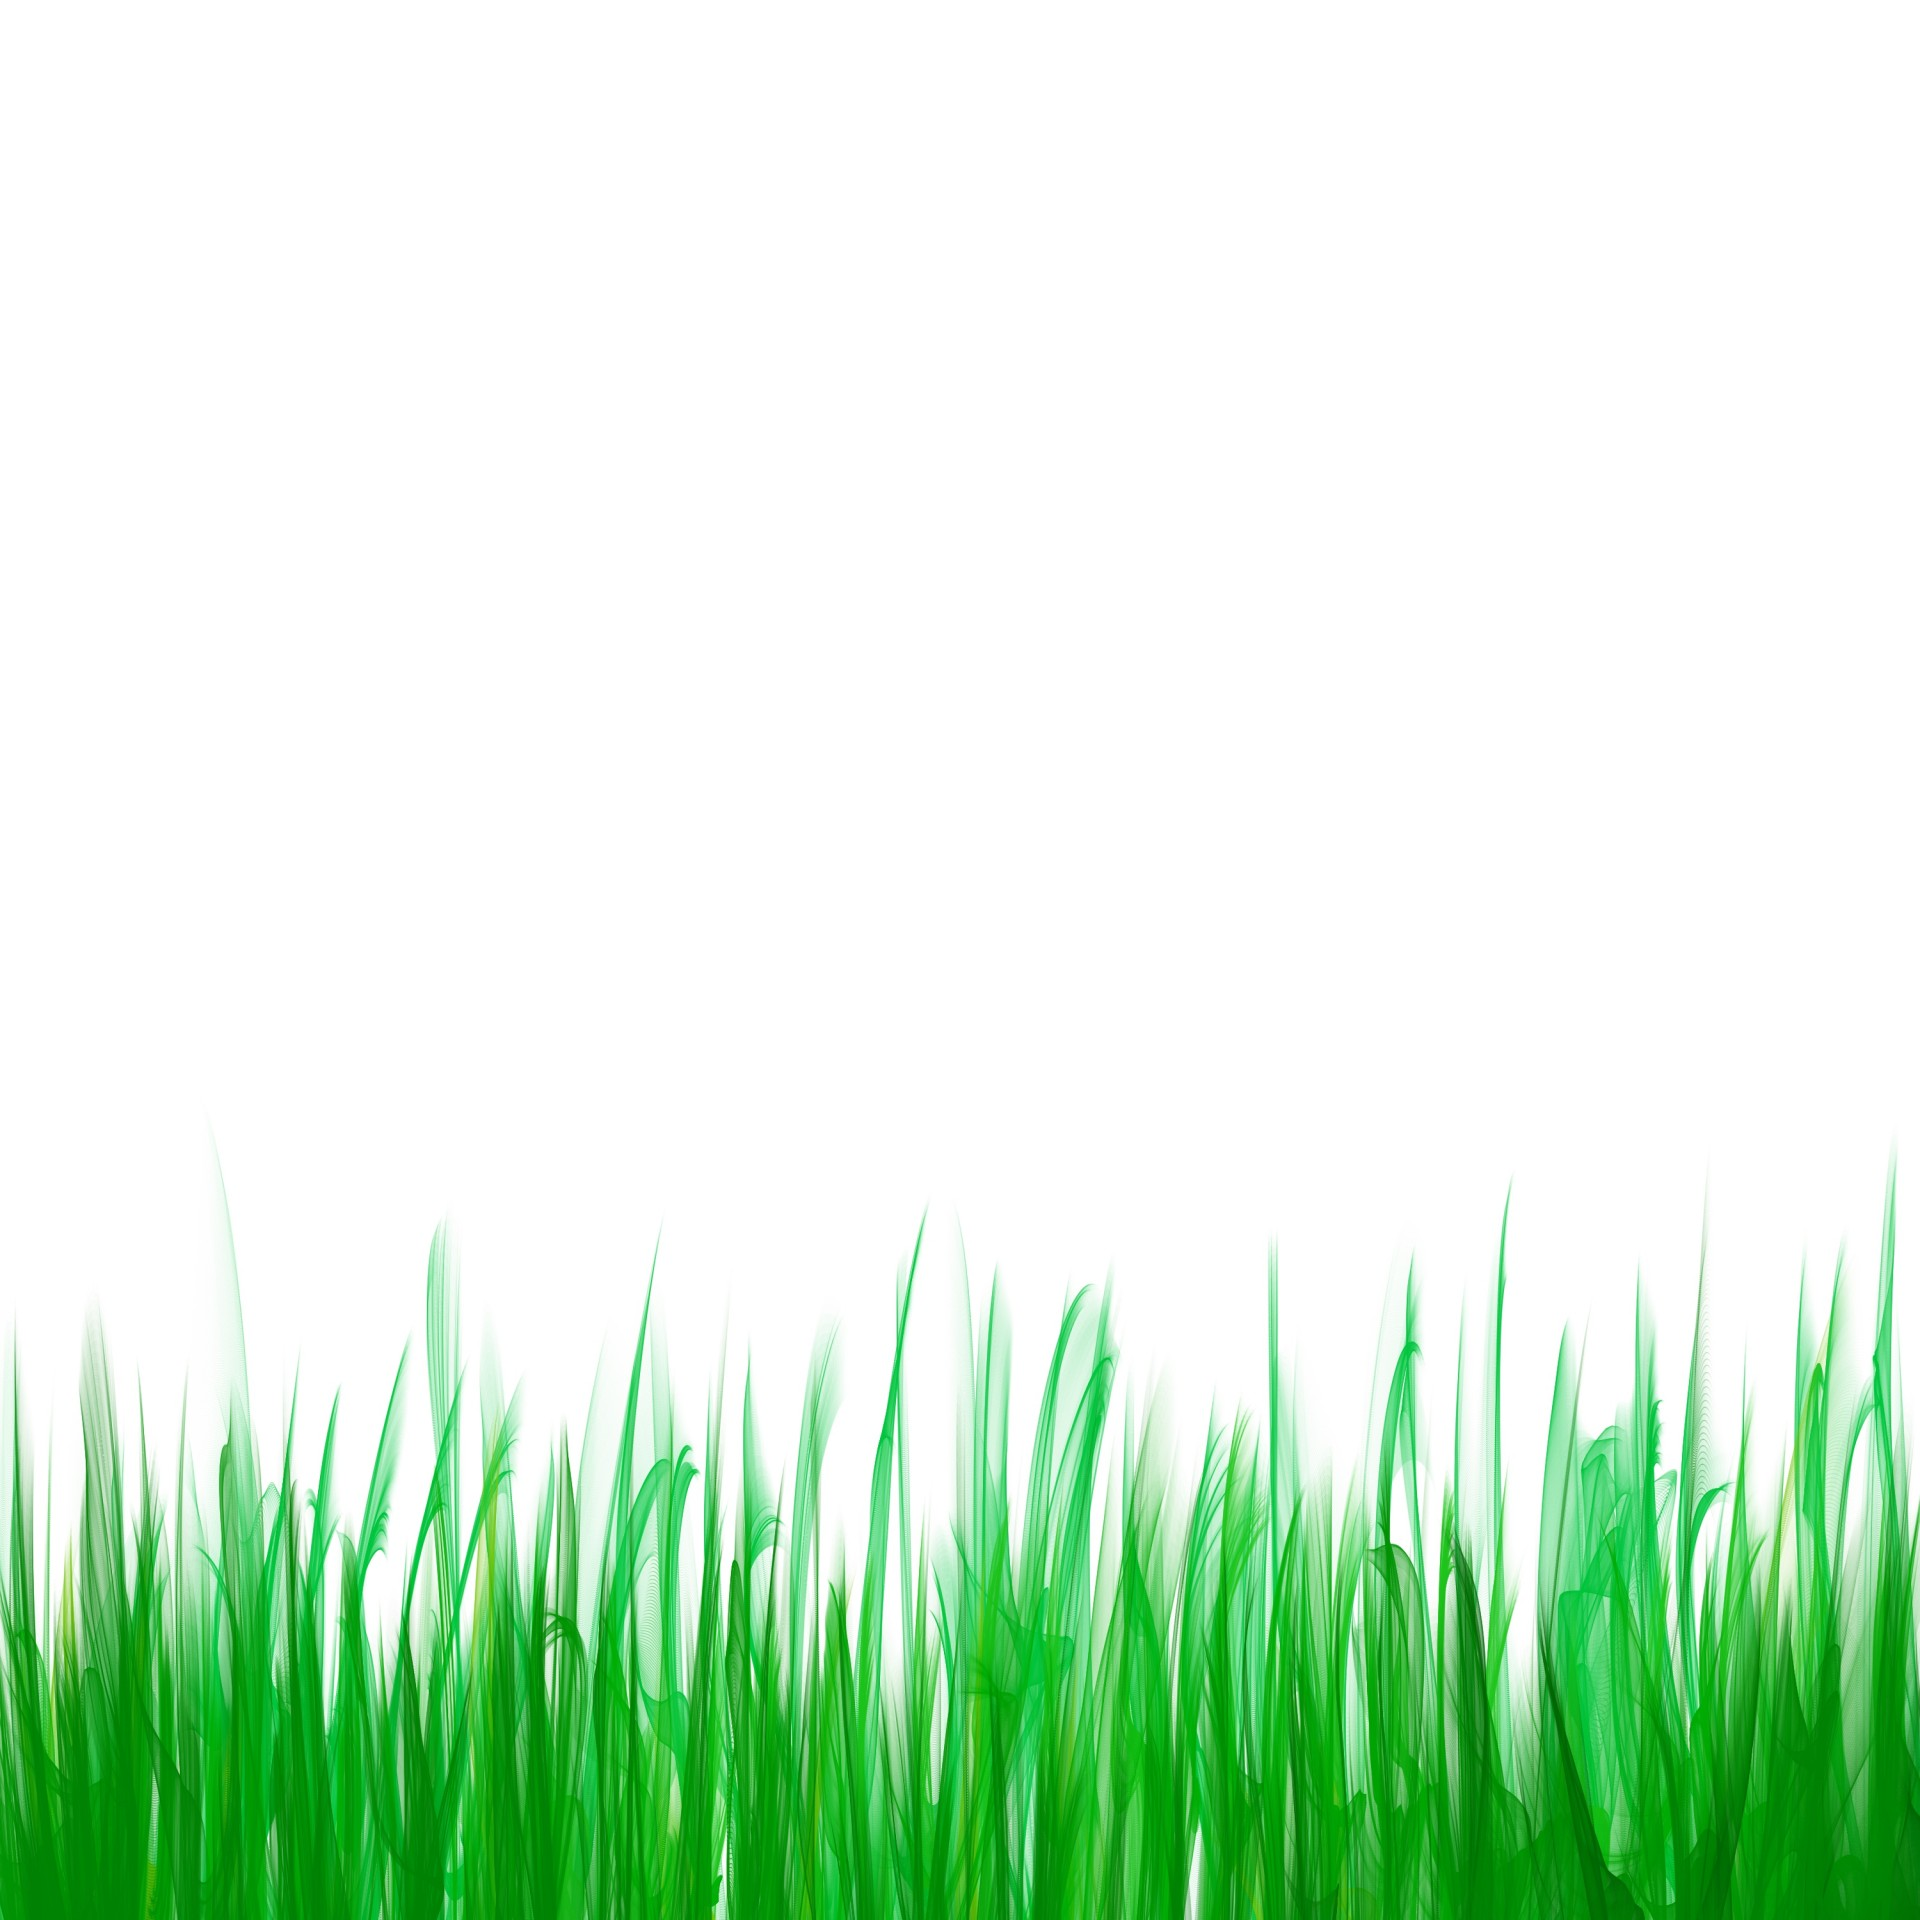 Green Grass Clipart Free Stock Photo.